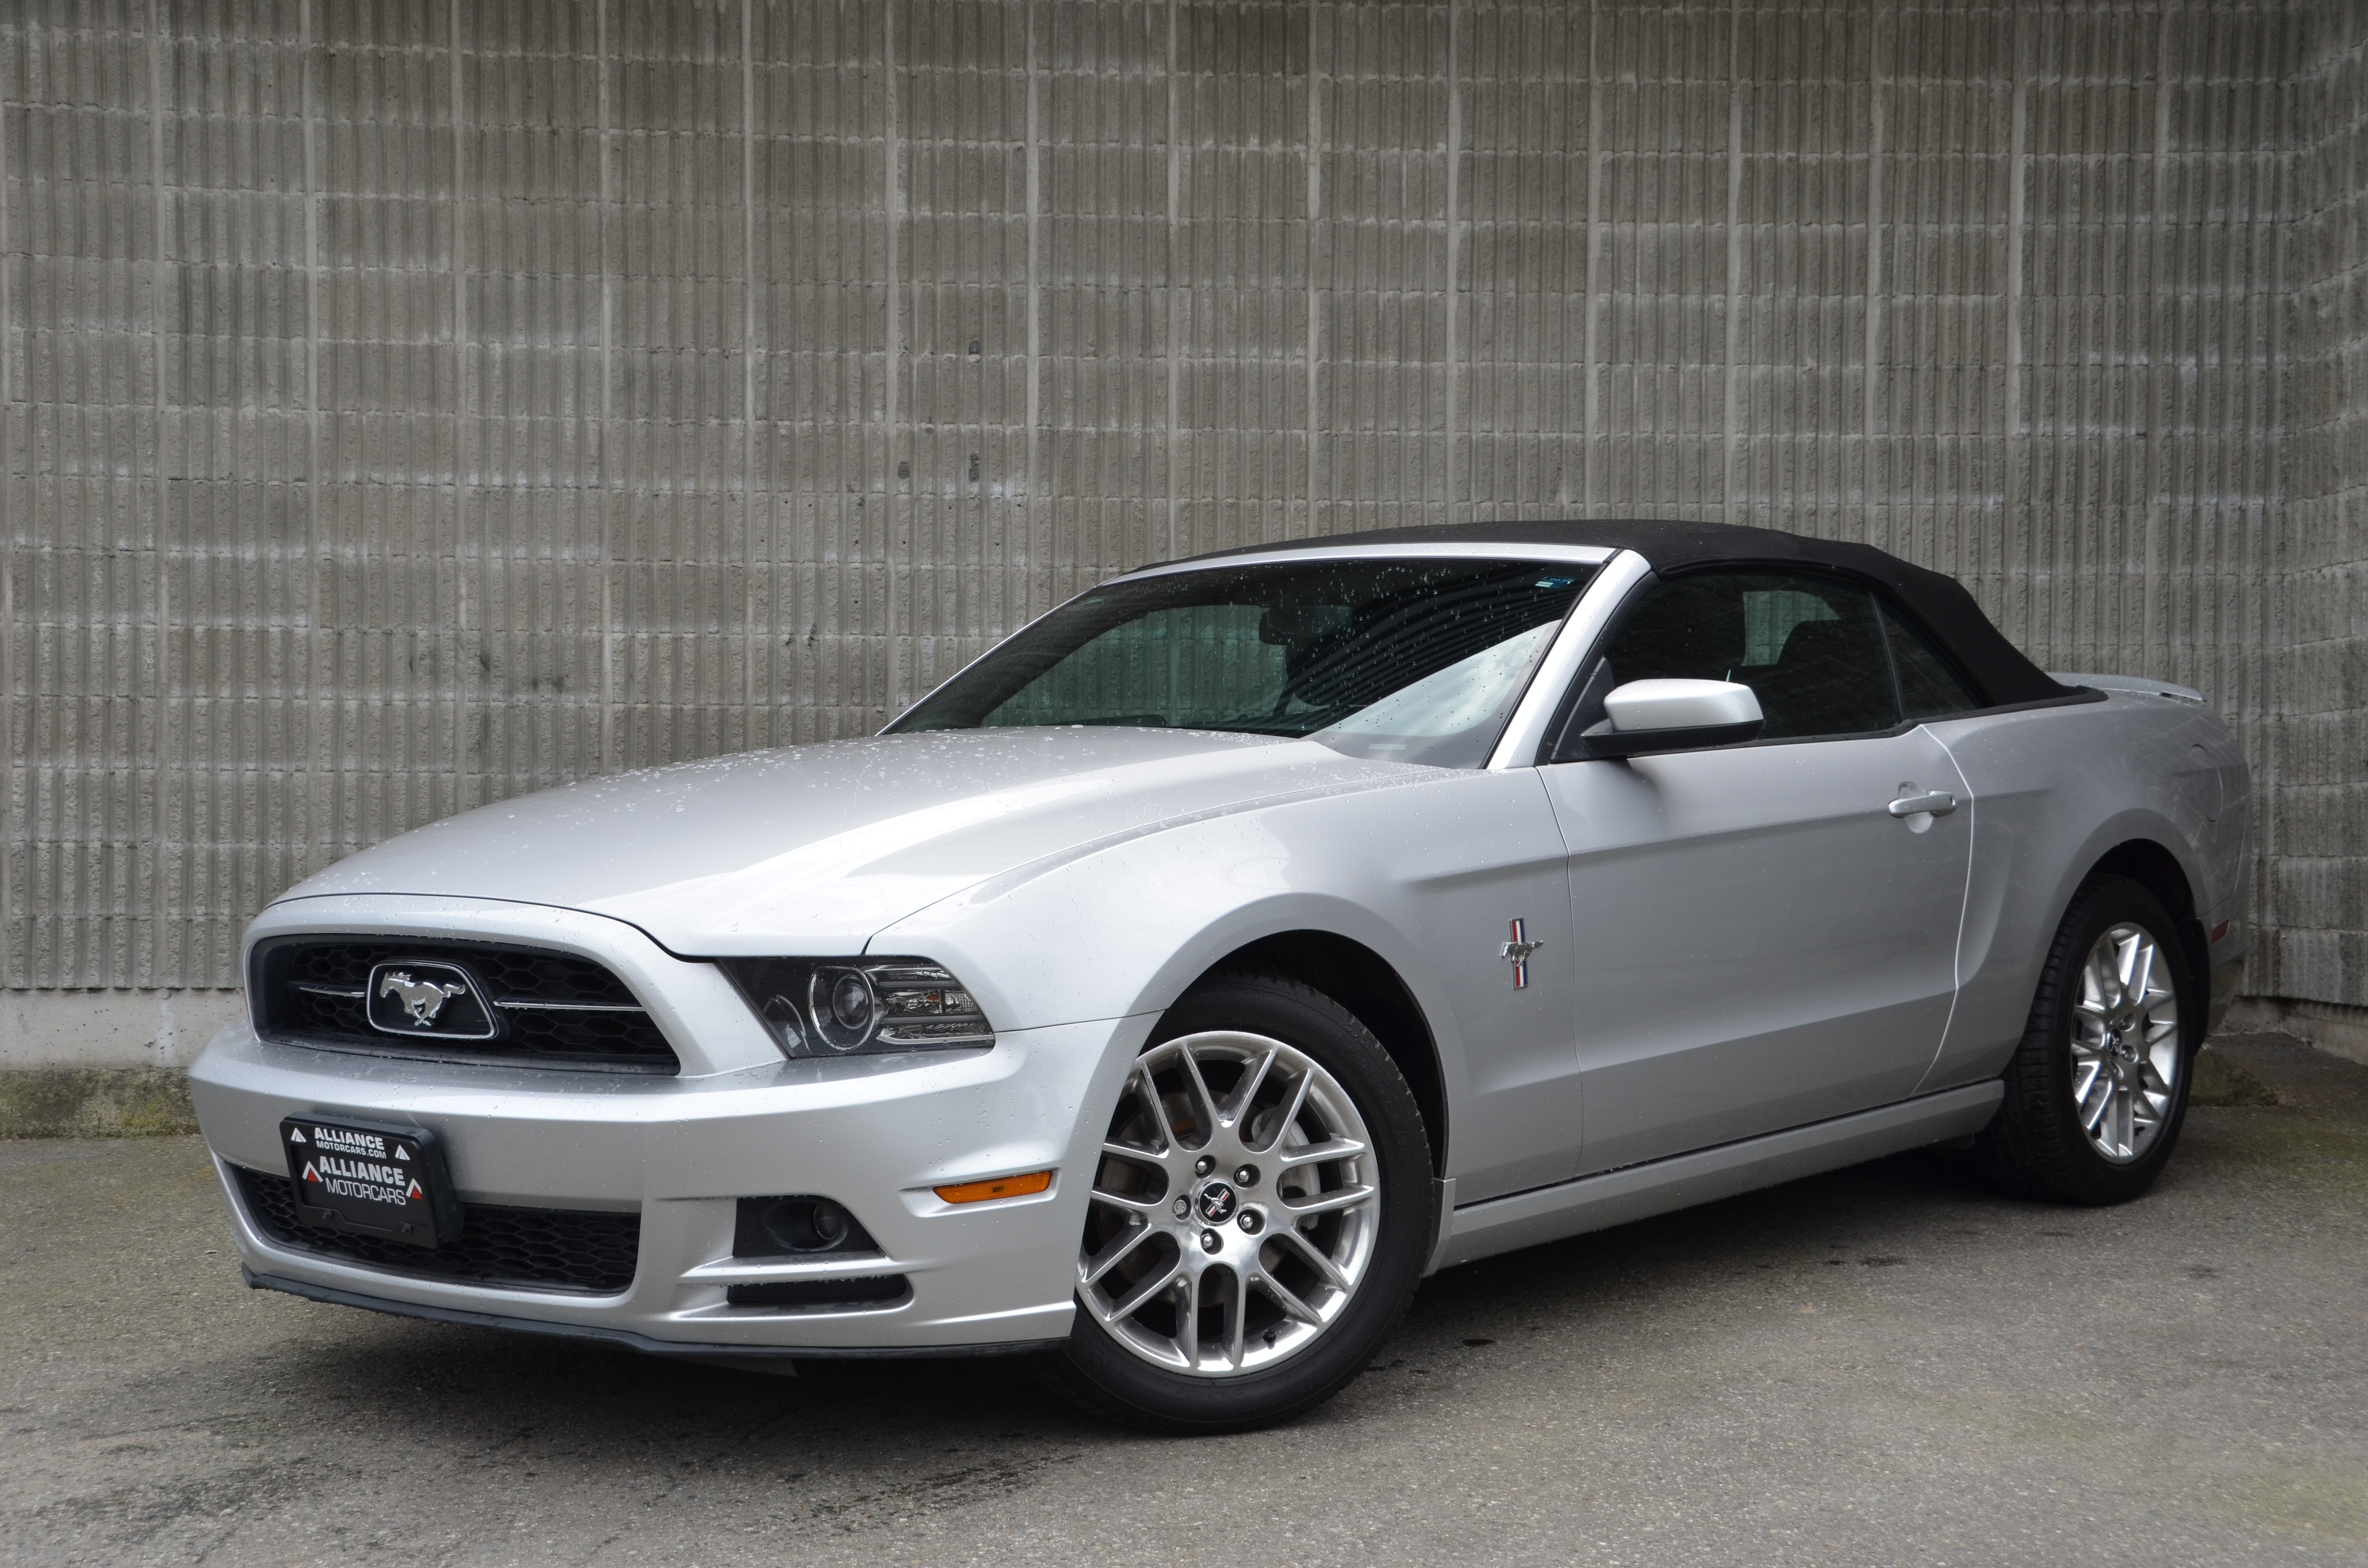 2013 Ford Mustang V6 Premium Leather! Convertible! Convertible